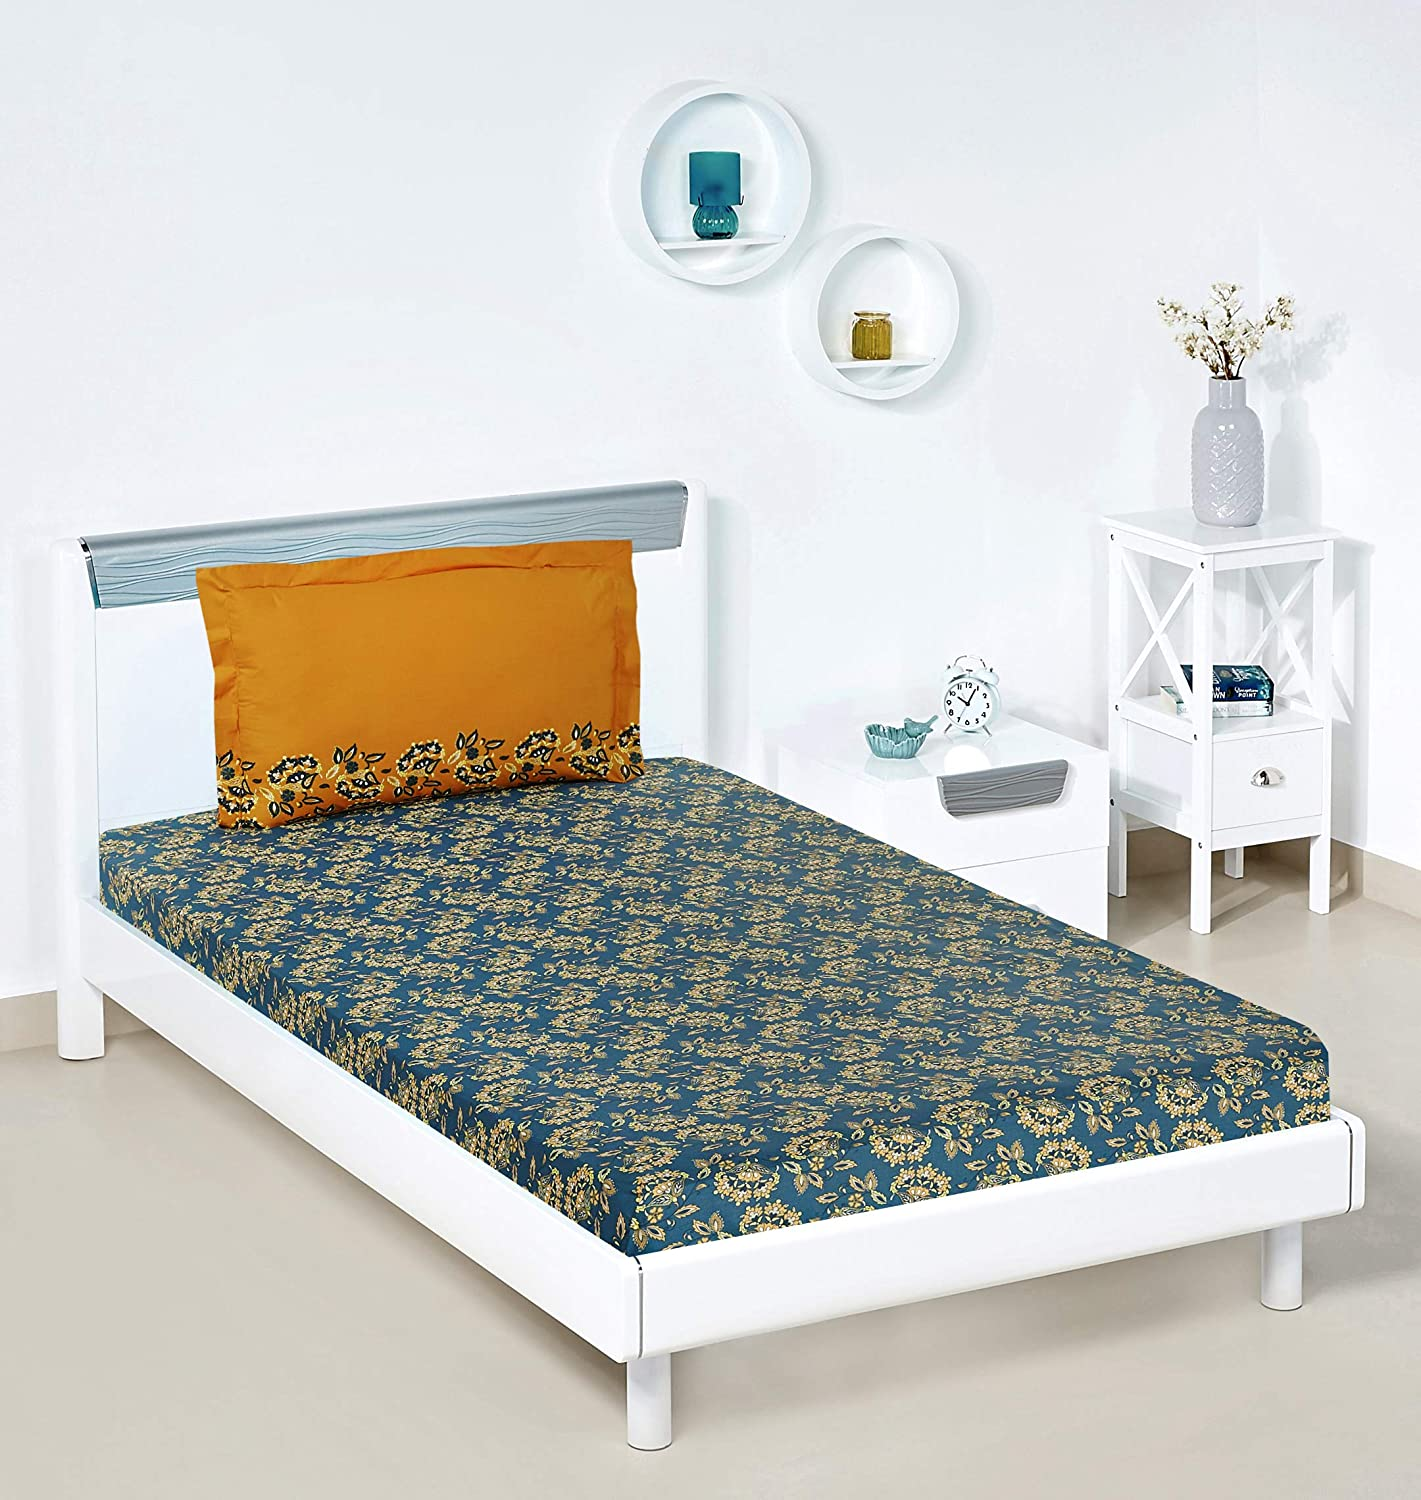 f53199f586 Amazon Brand - Solimo Ditsy Dale 144 TC 100% Cotton Single Bedsheet with 1  Pillow Covers, Blue: Amazon.in: Home & Kitchen